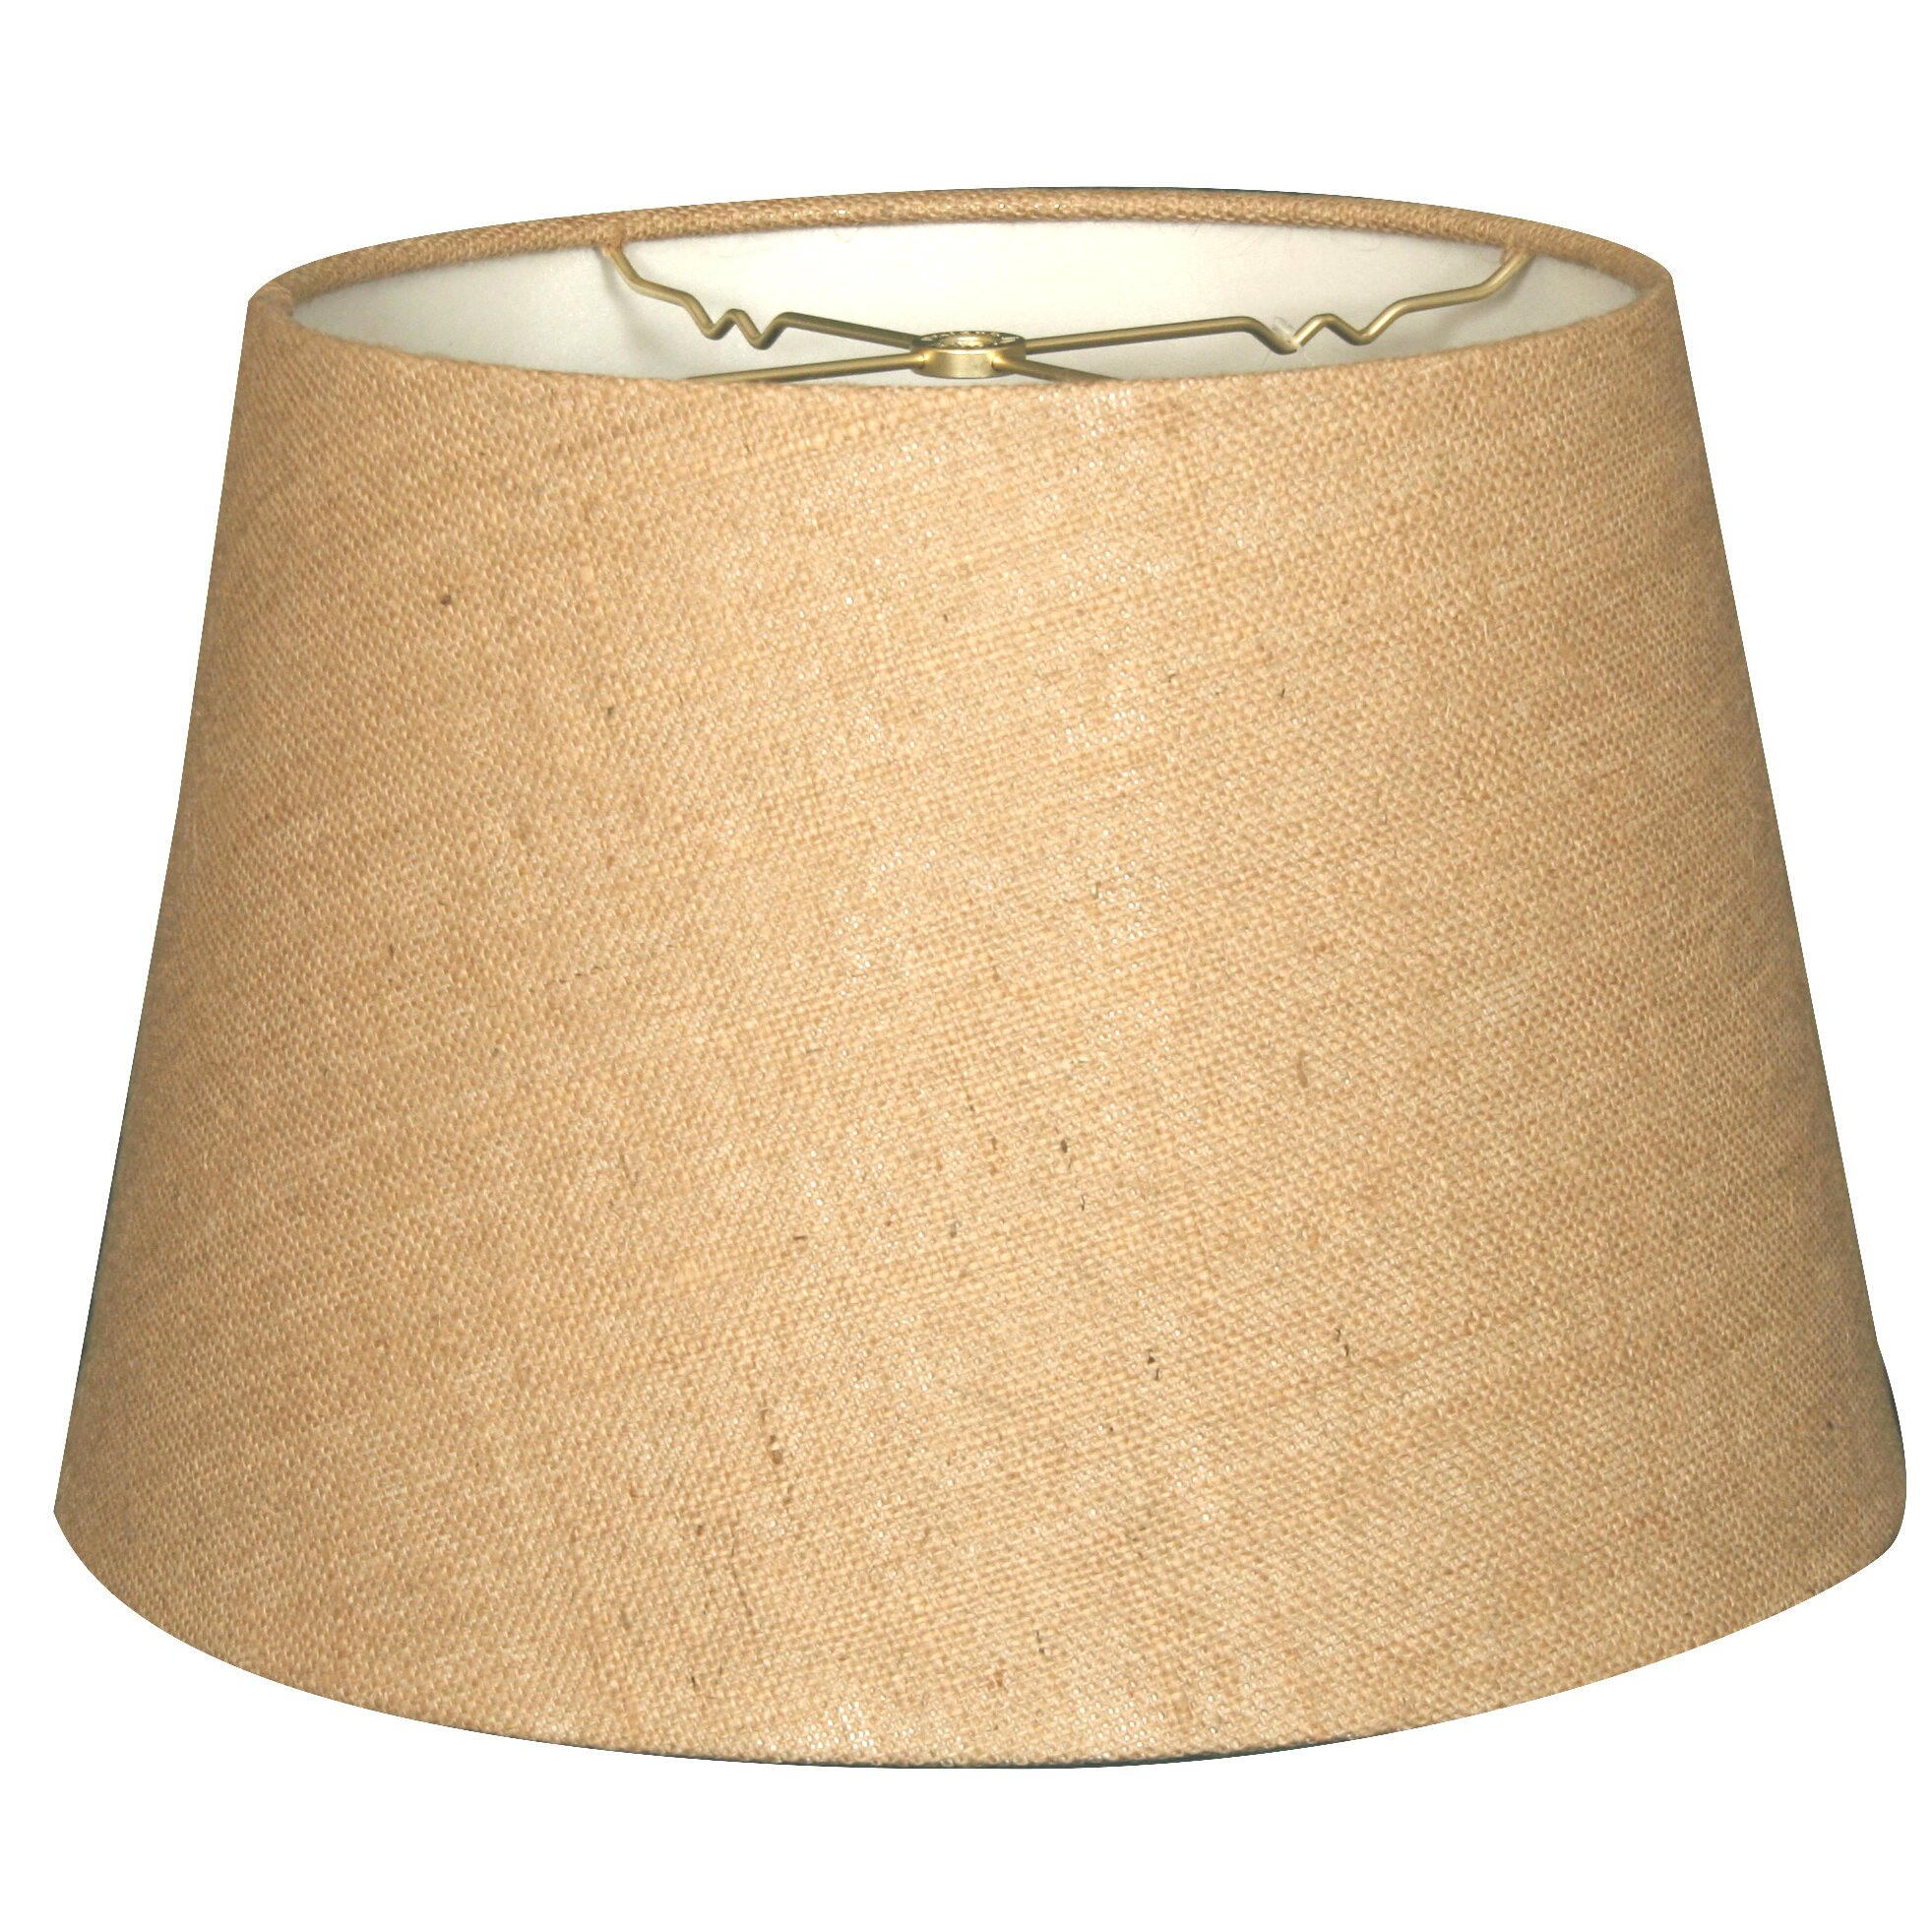 16 timeless burlap tapered shallow drum lamp shade by royaldesigns. Black Bedroom Furniture Sets. Home Design Ideas